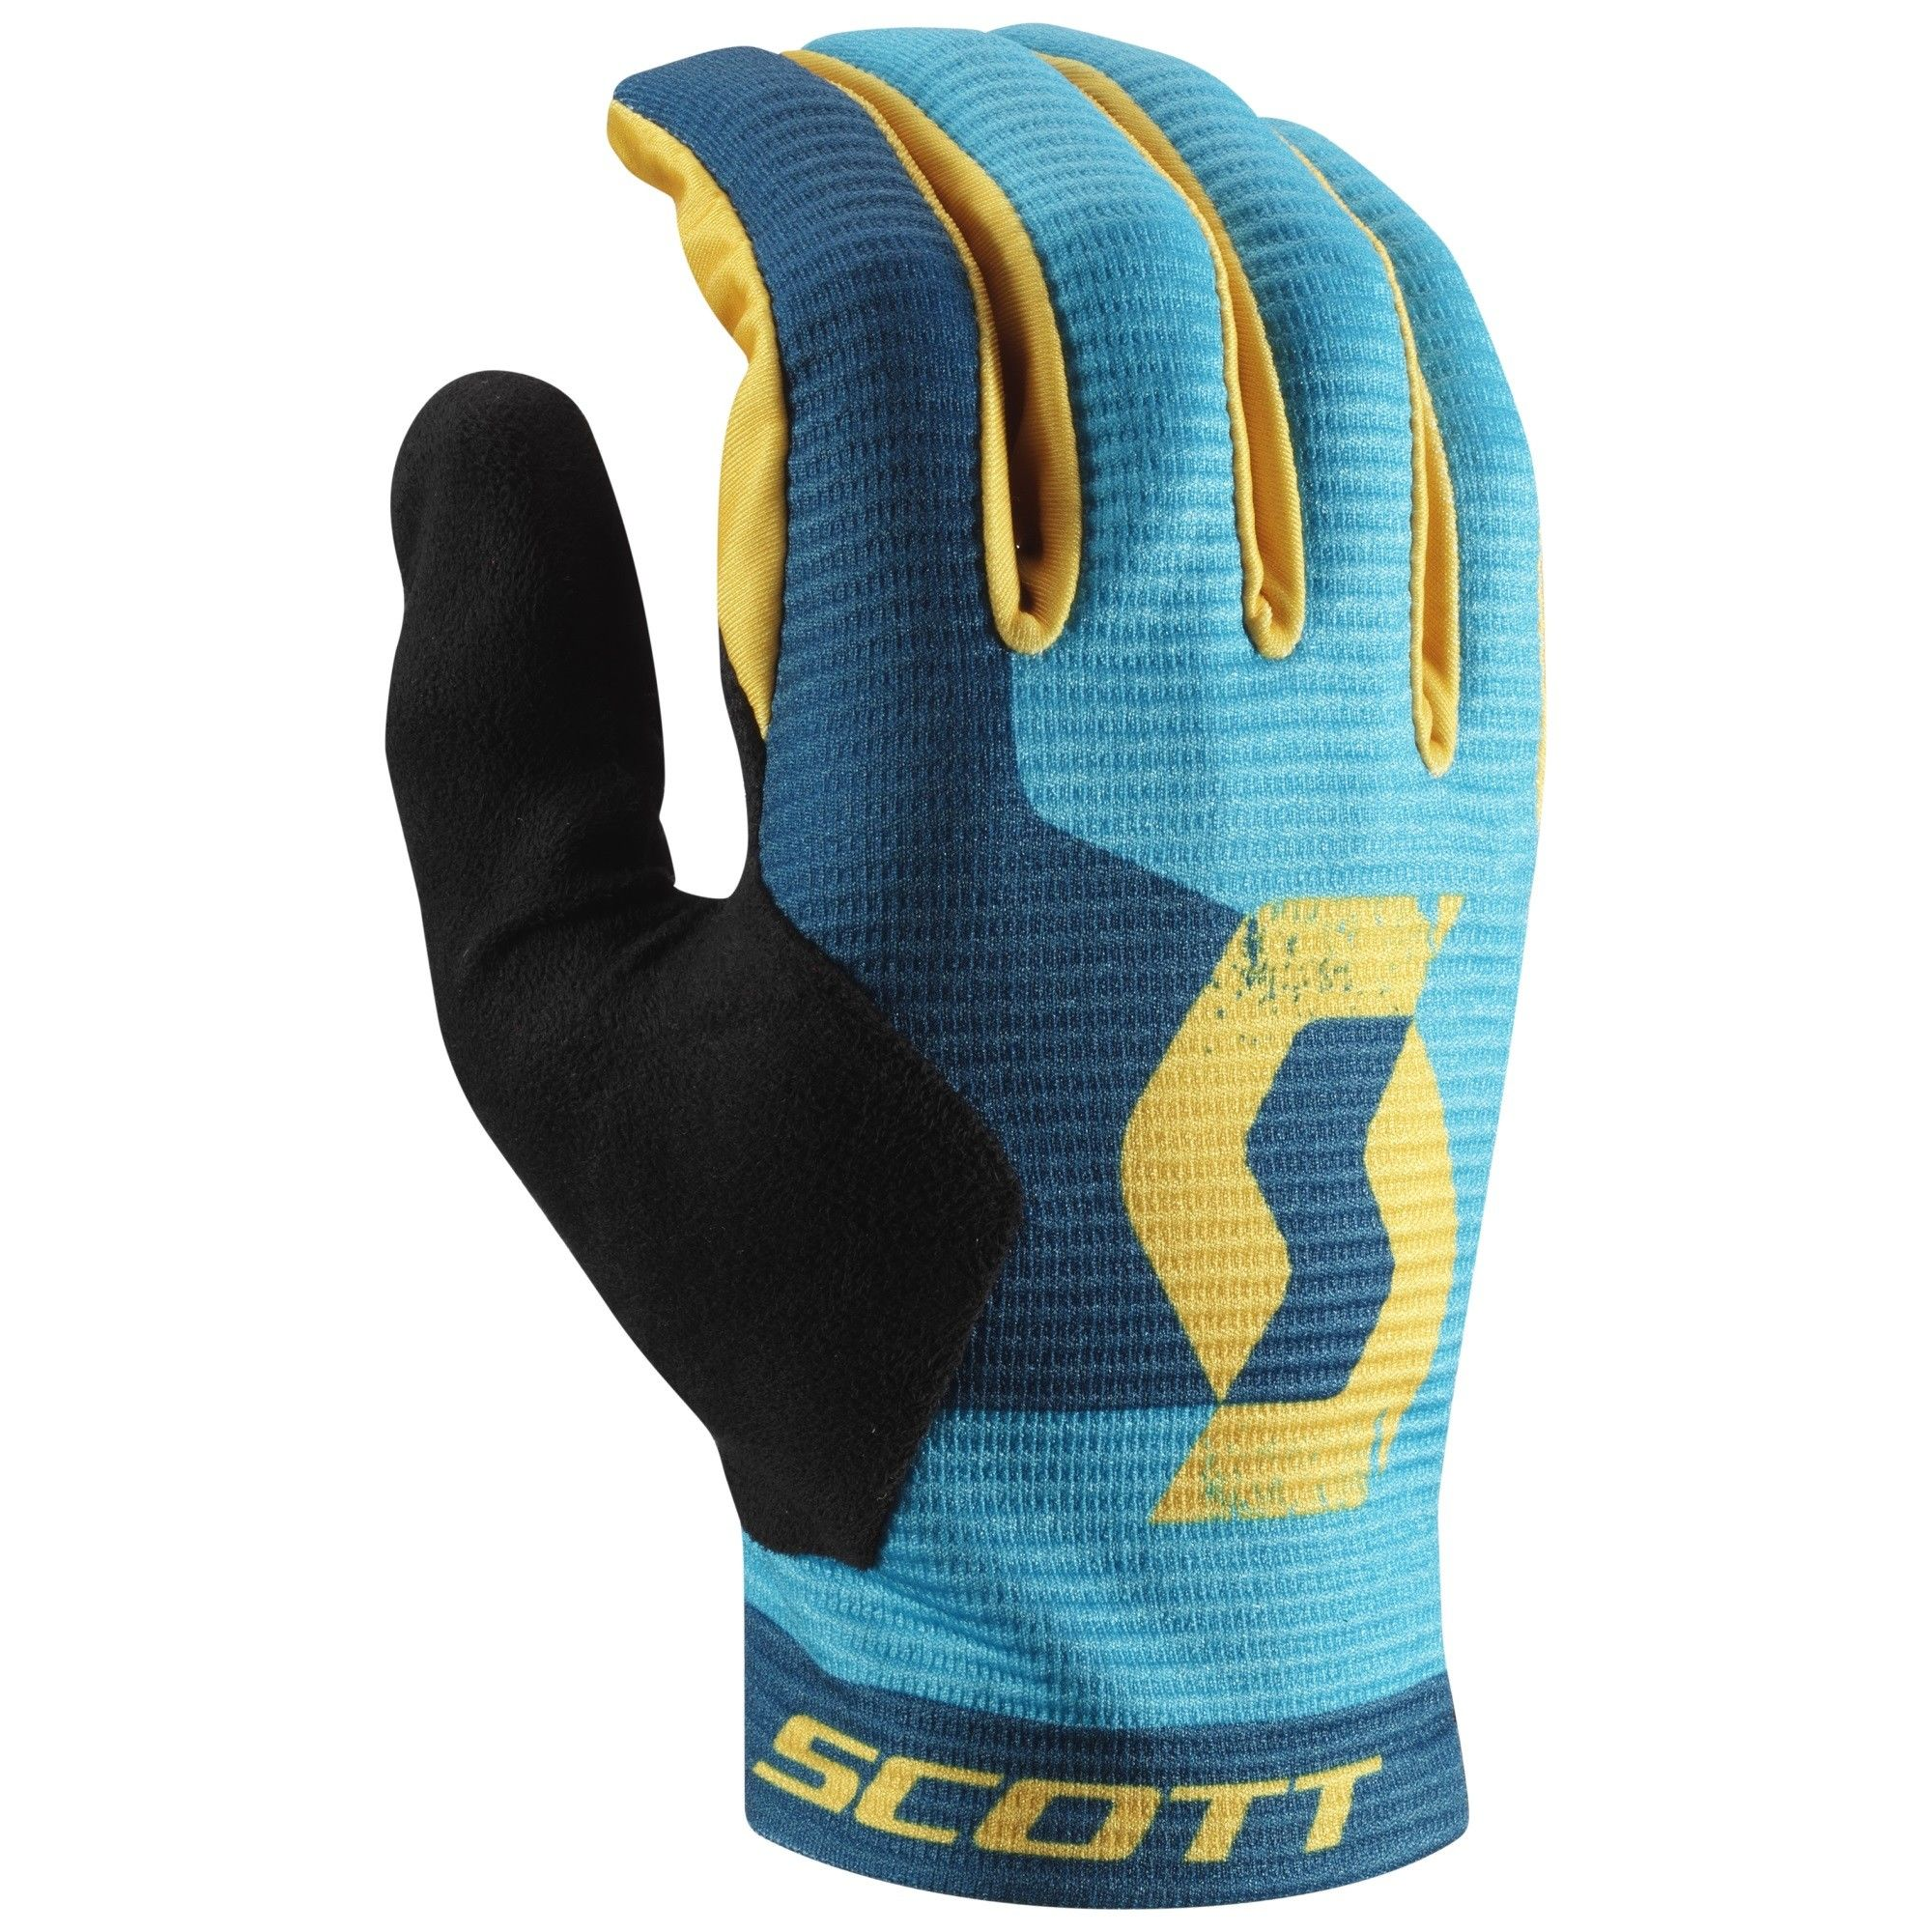 Scott Ridance LF Glove, Eclipse Blue Blau, S